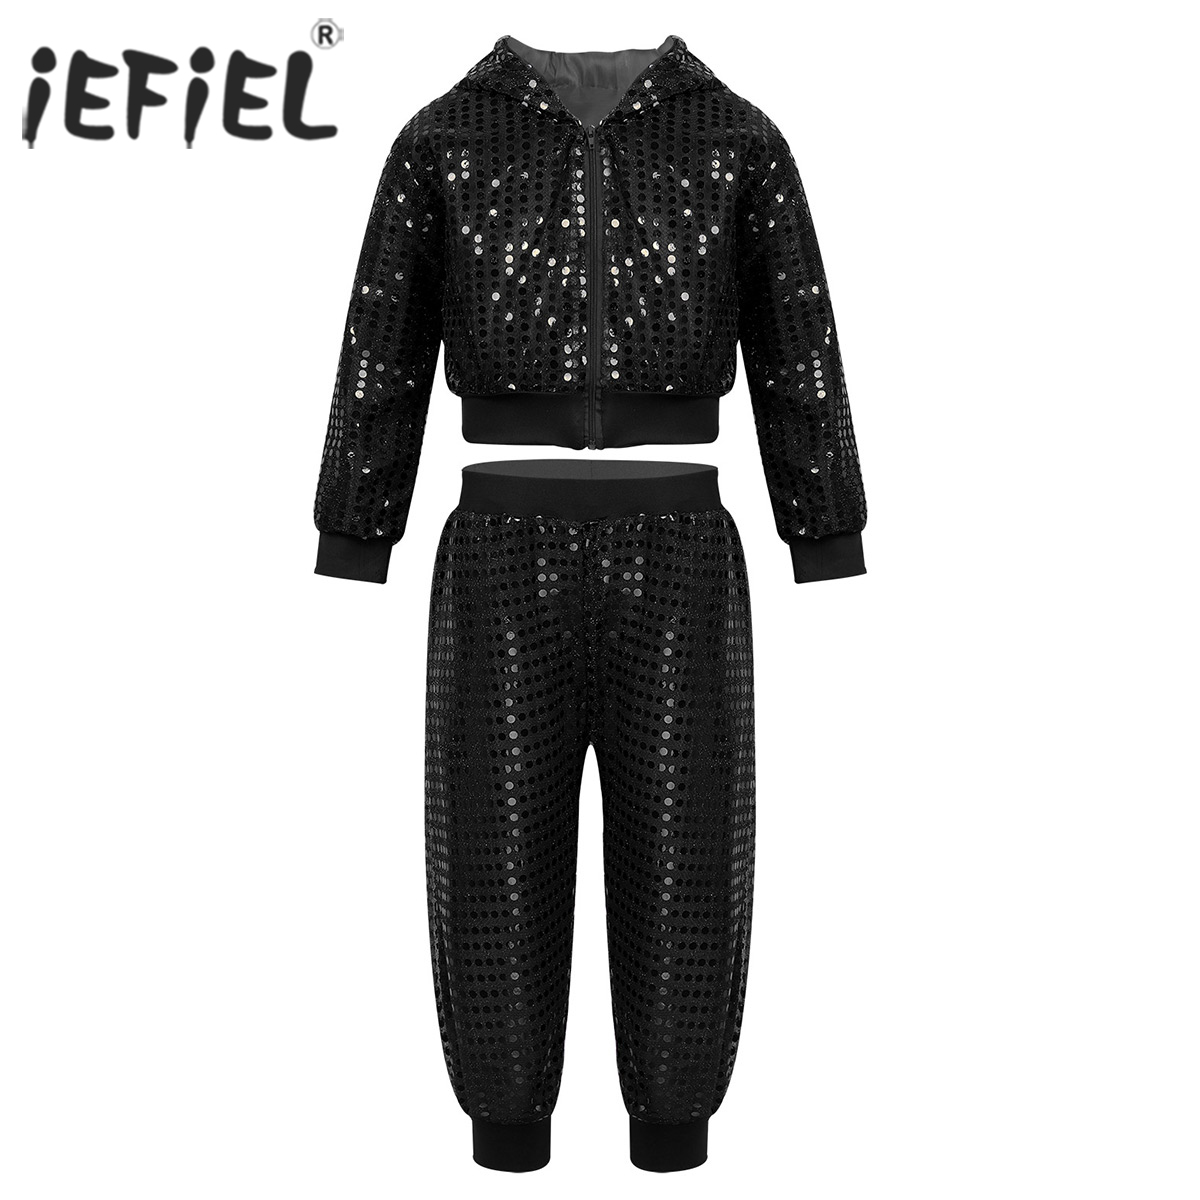 Unisex Kids Boys Girls Hip-hop Jazz Performance Costume Street Dancing Team Wear Shiny Sequins Hooded Tops with Pants Dancewear